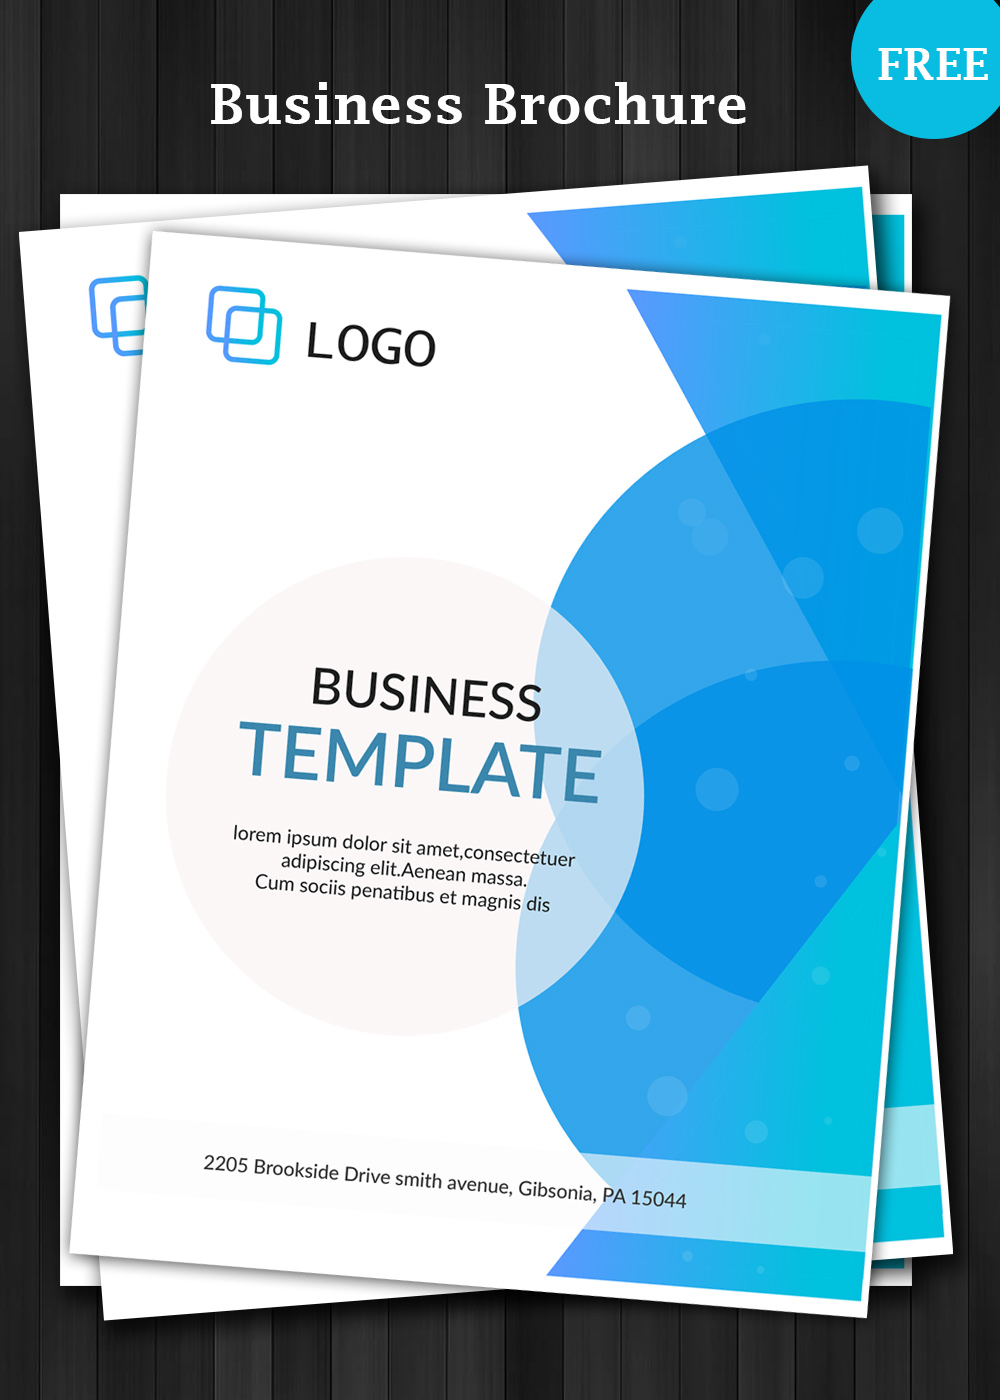 brochure-business